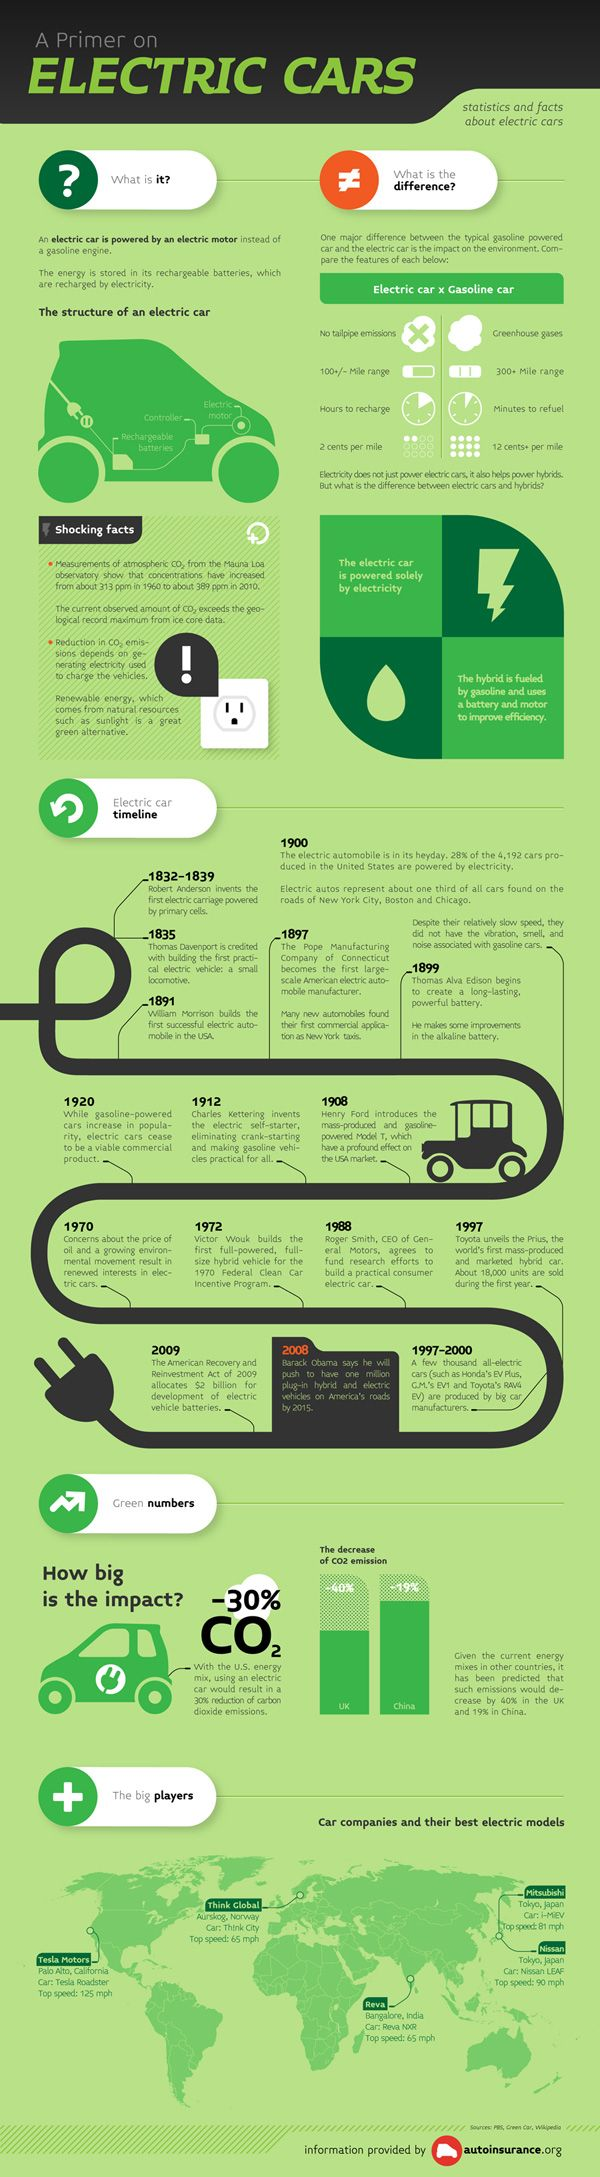 A Primer on Electric Cars [Infographic] .. [automobile, Automotive, CO2, Electric Cars, Mitsubishi, Nissan, Reva, Tesla Motors, Think Global, Timeline, timeline history, www.autoinsurance.org ]